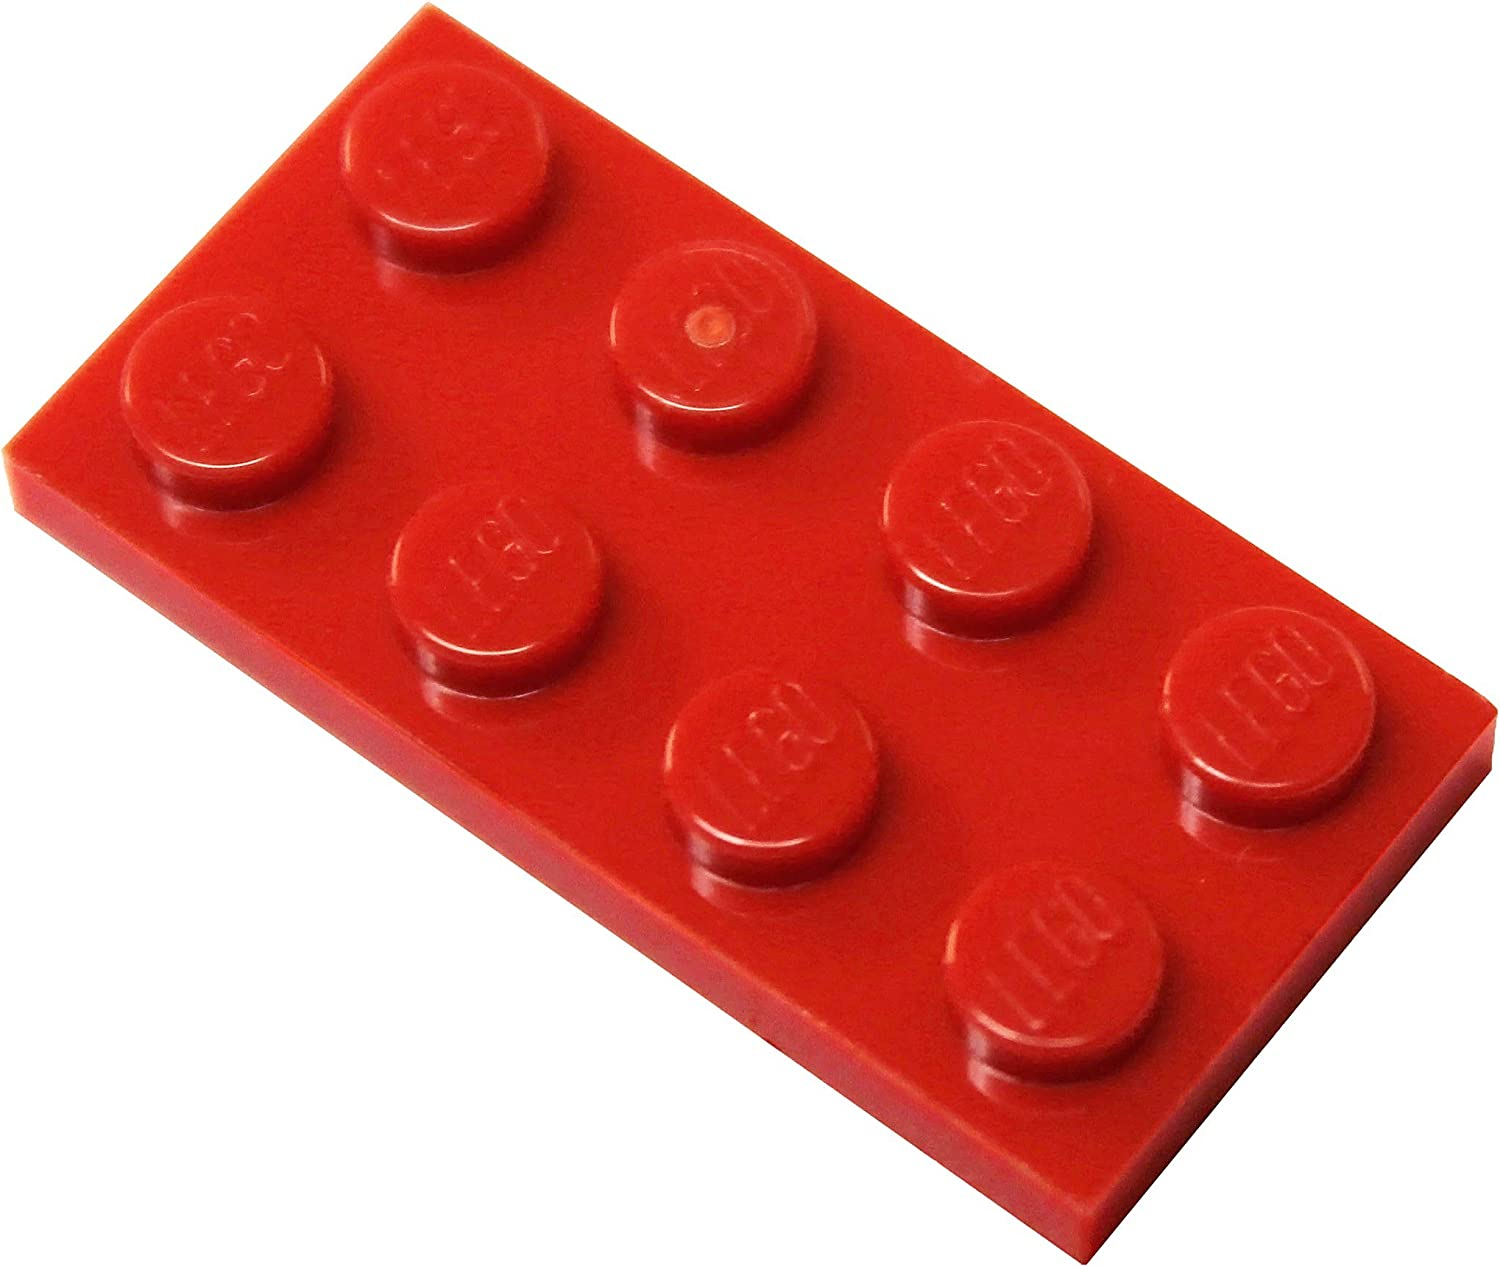 LEGO Parts and Pieces: Red (Bright Red) 2x4 Plate x50